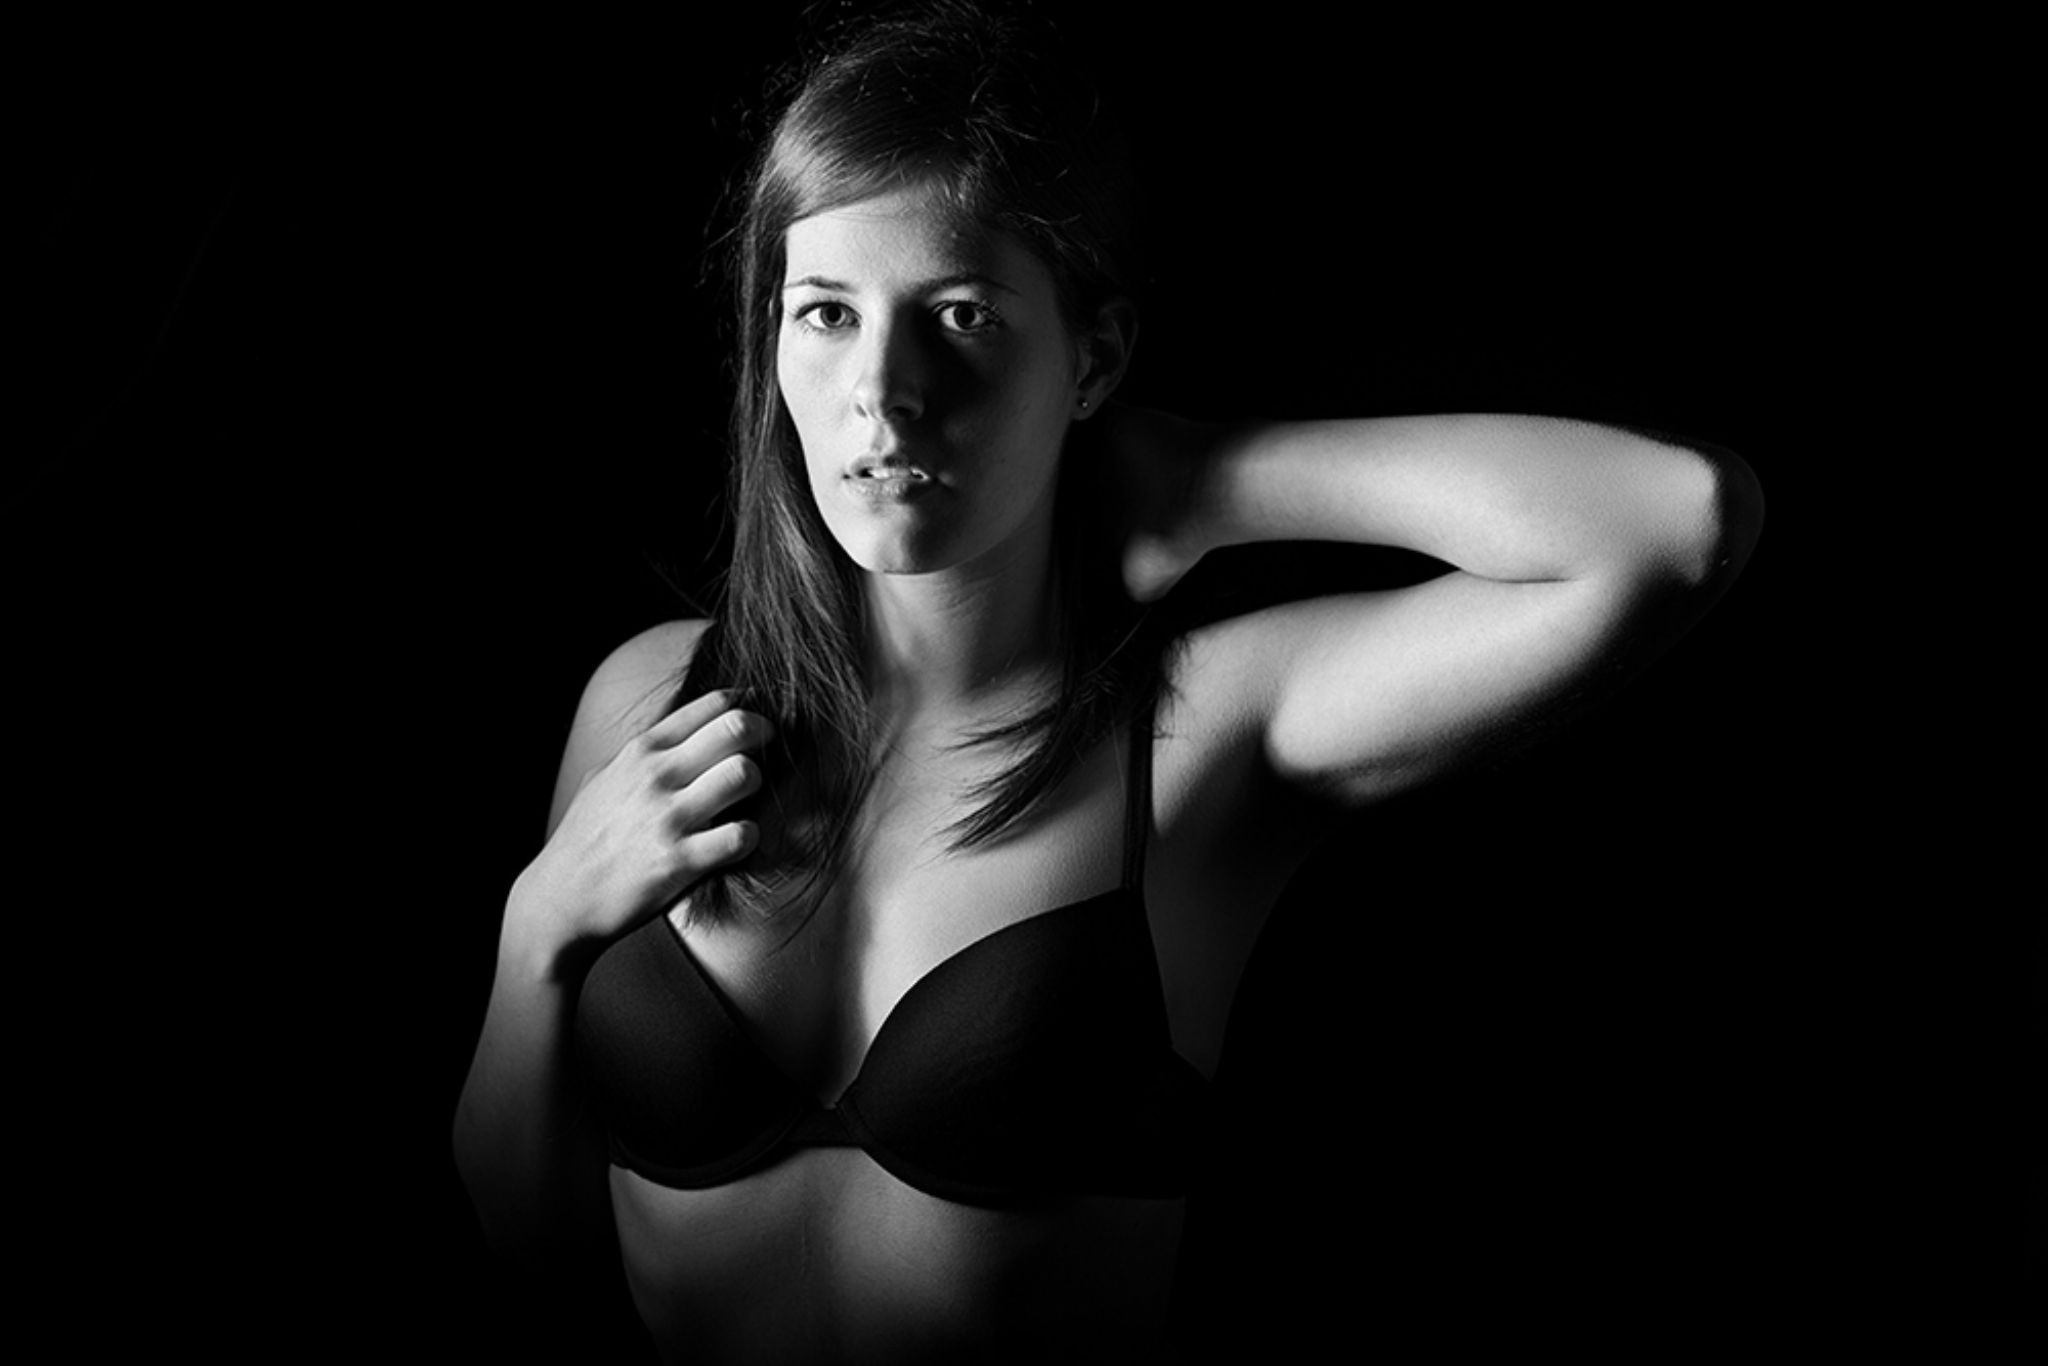 Caro by Dirk Adolphs Photography